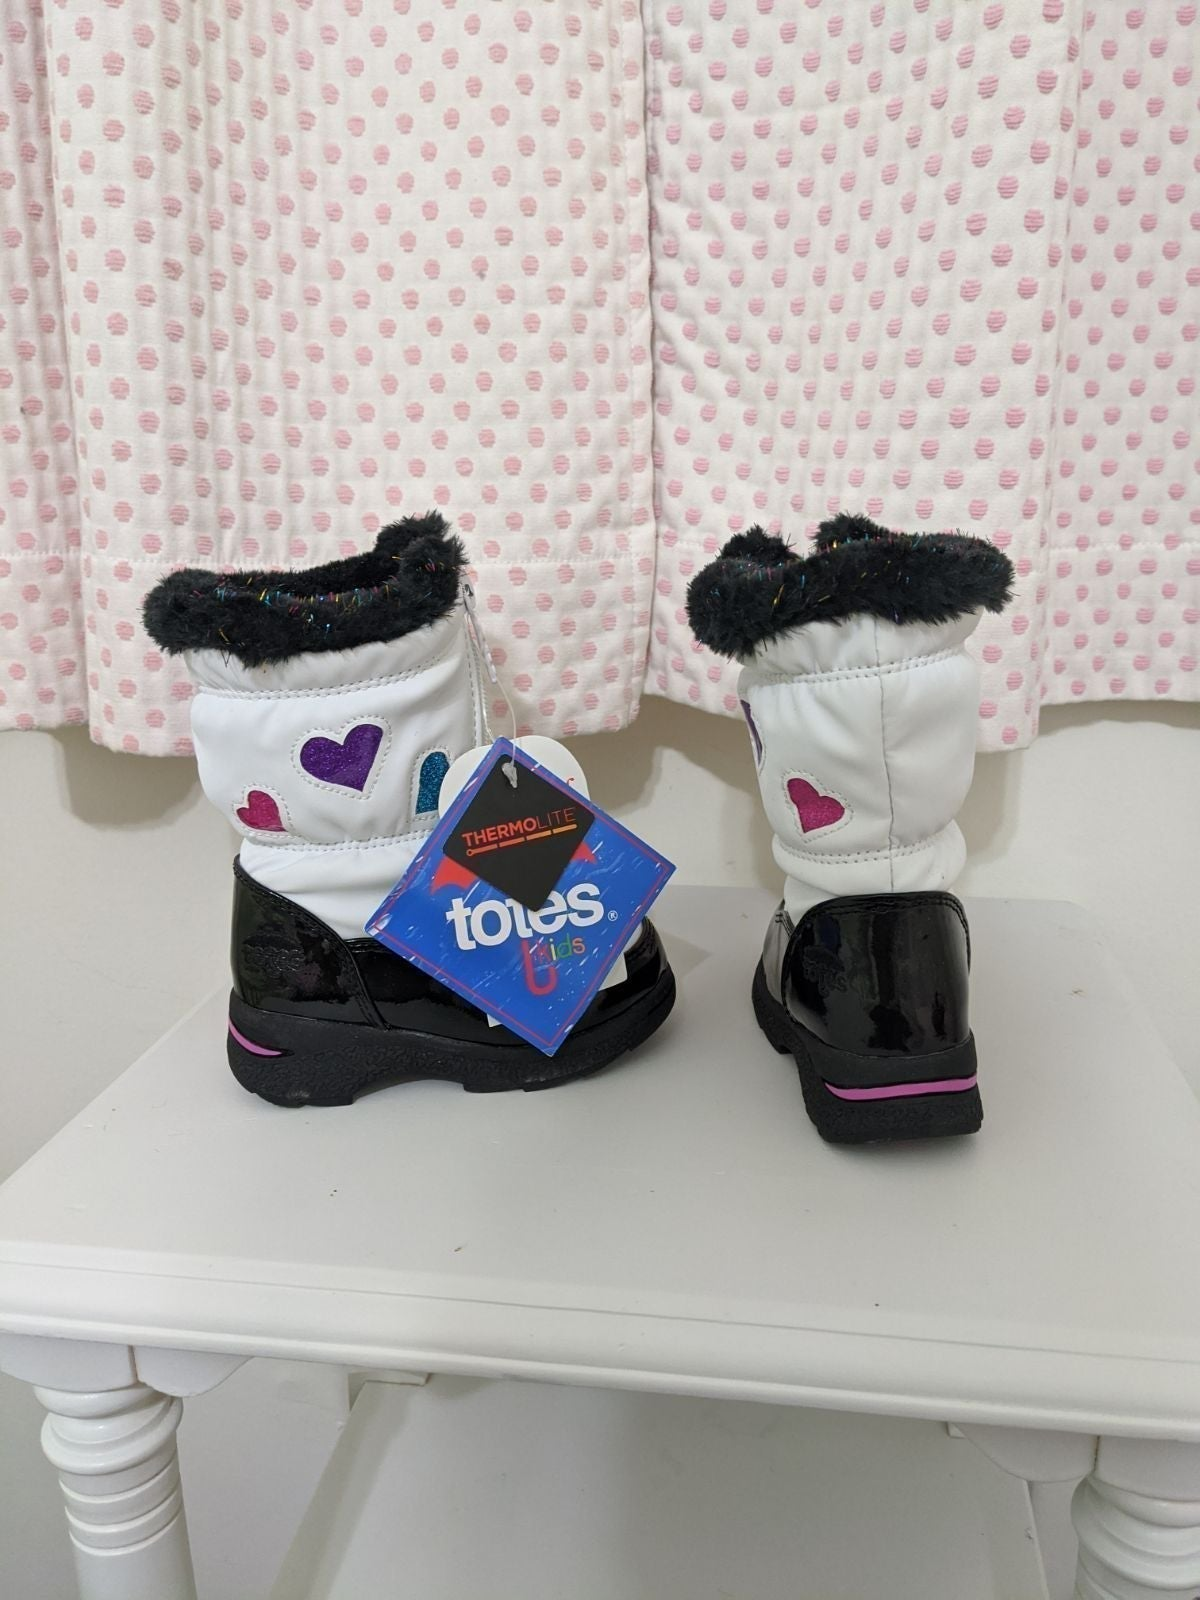 Tote waterproof snow boots, size 6